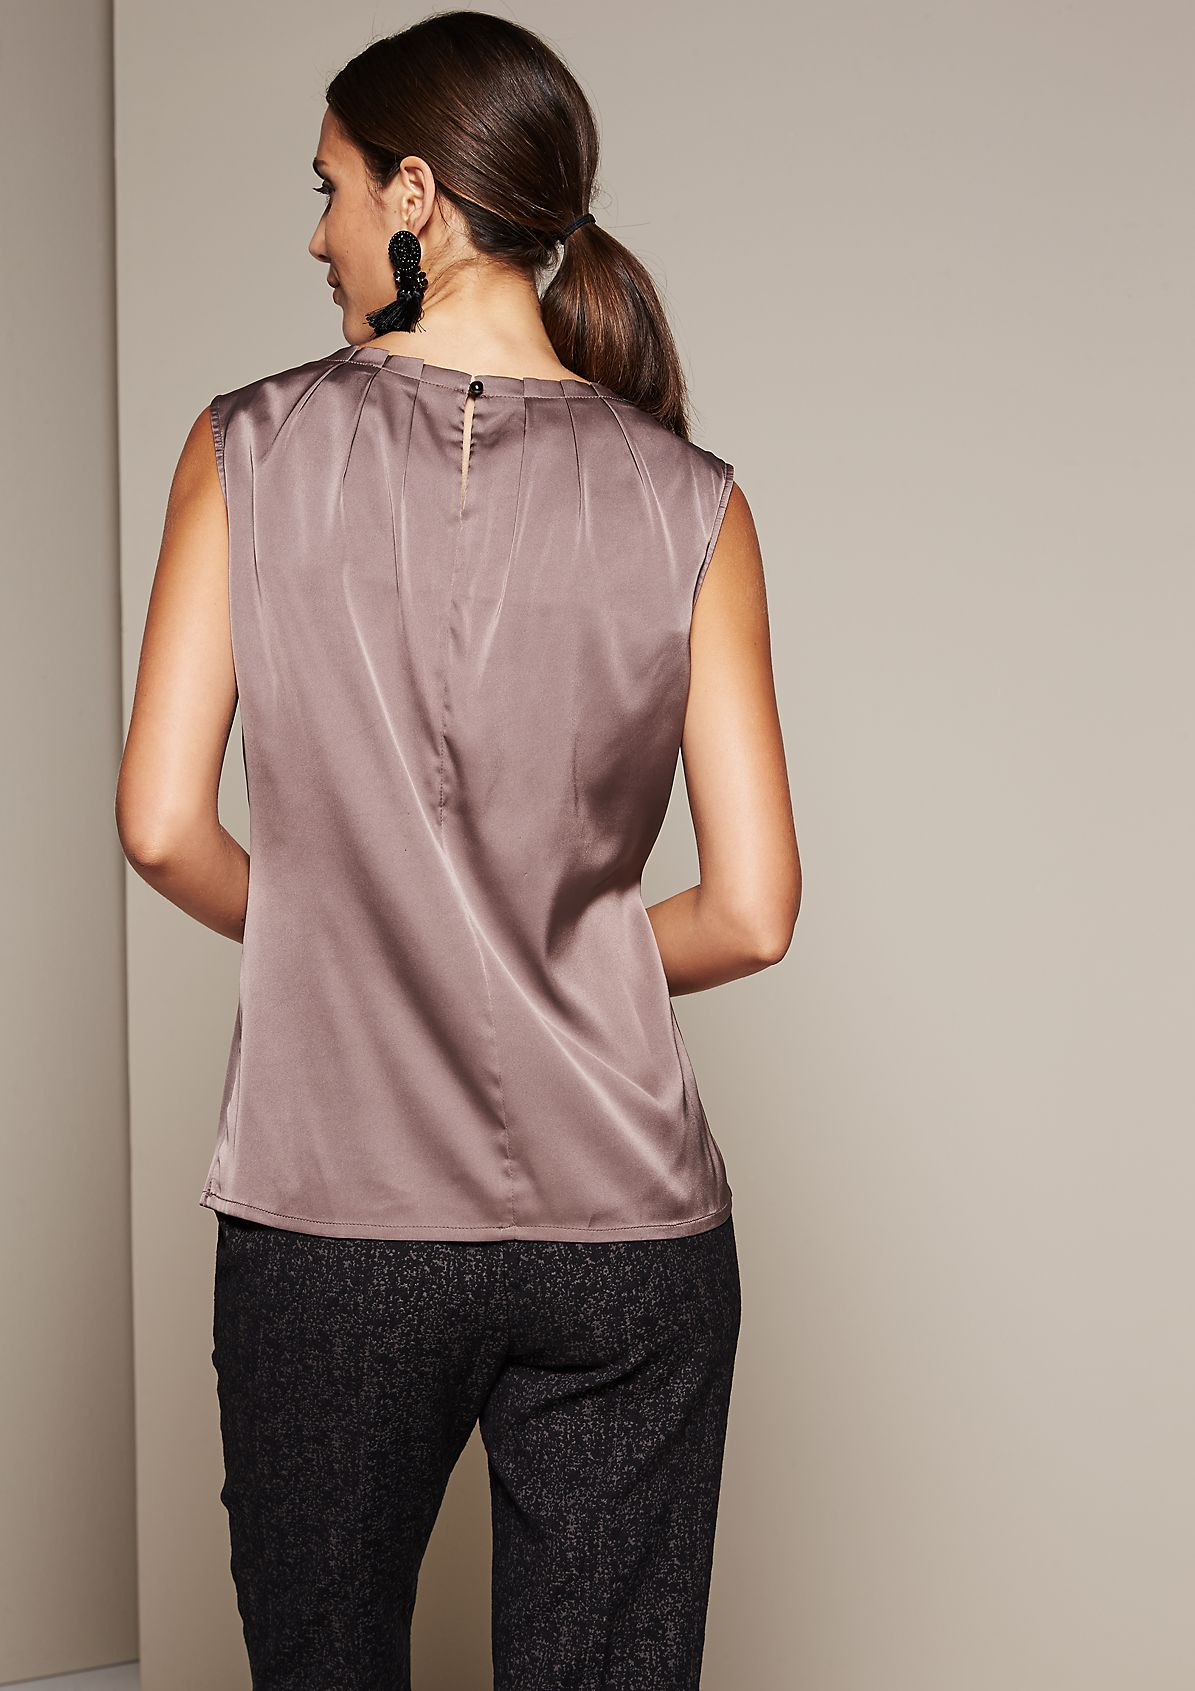 Blouse top with a fine sheen and decorative pleating from s.Oliver